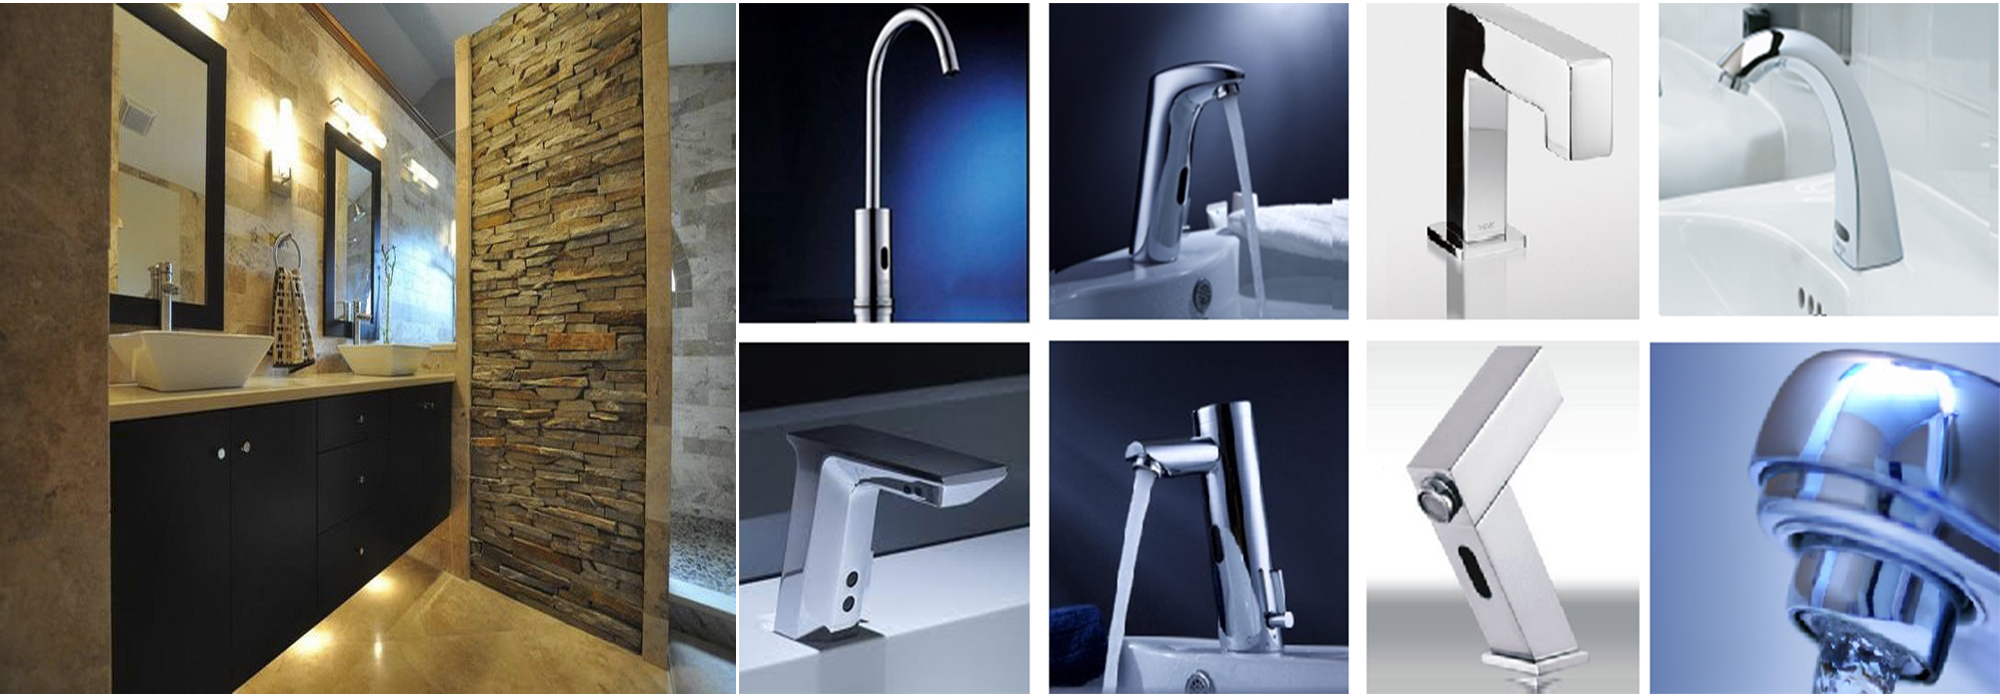 Automatic Motion Sensor Faucets Hands Free